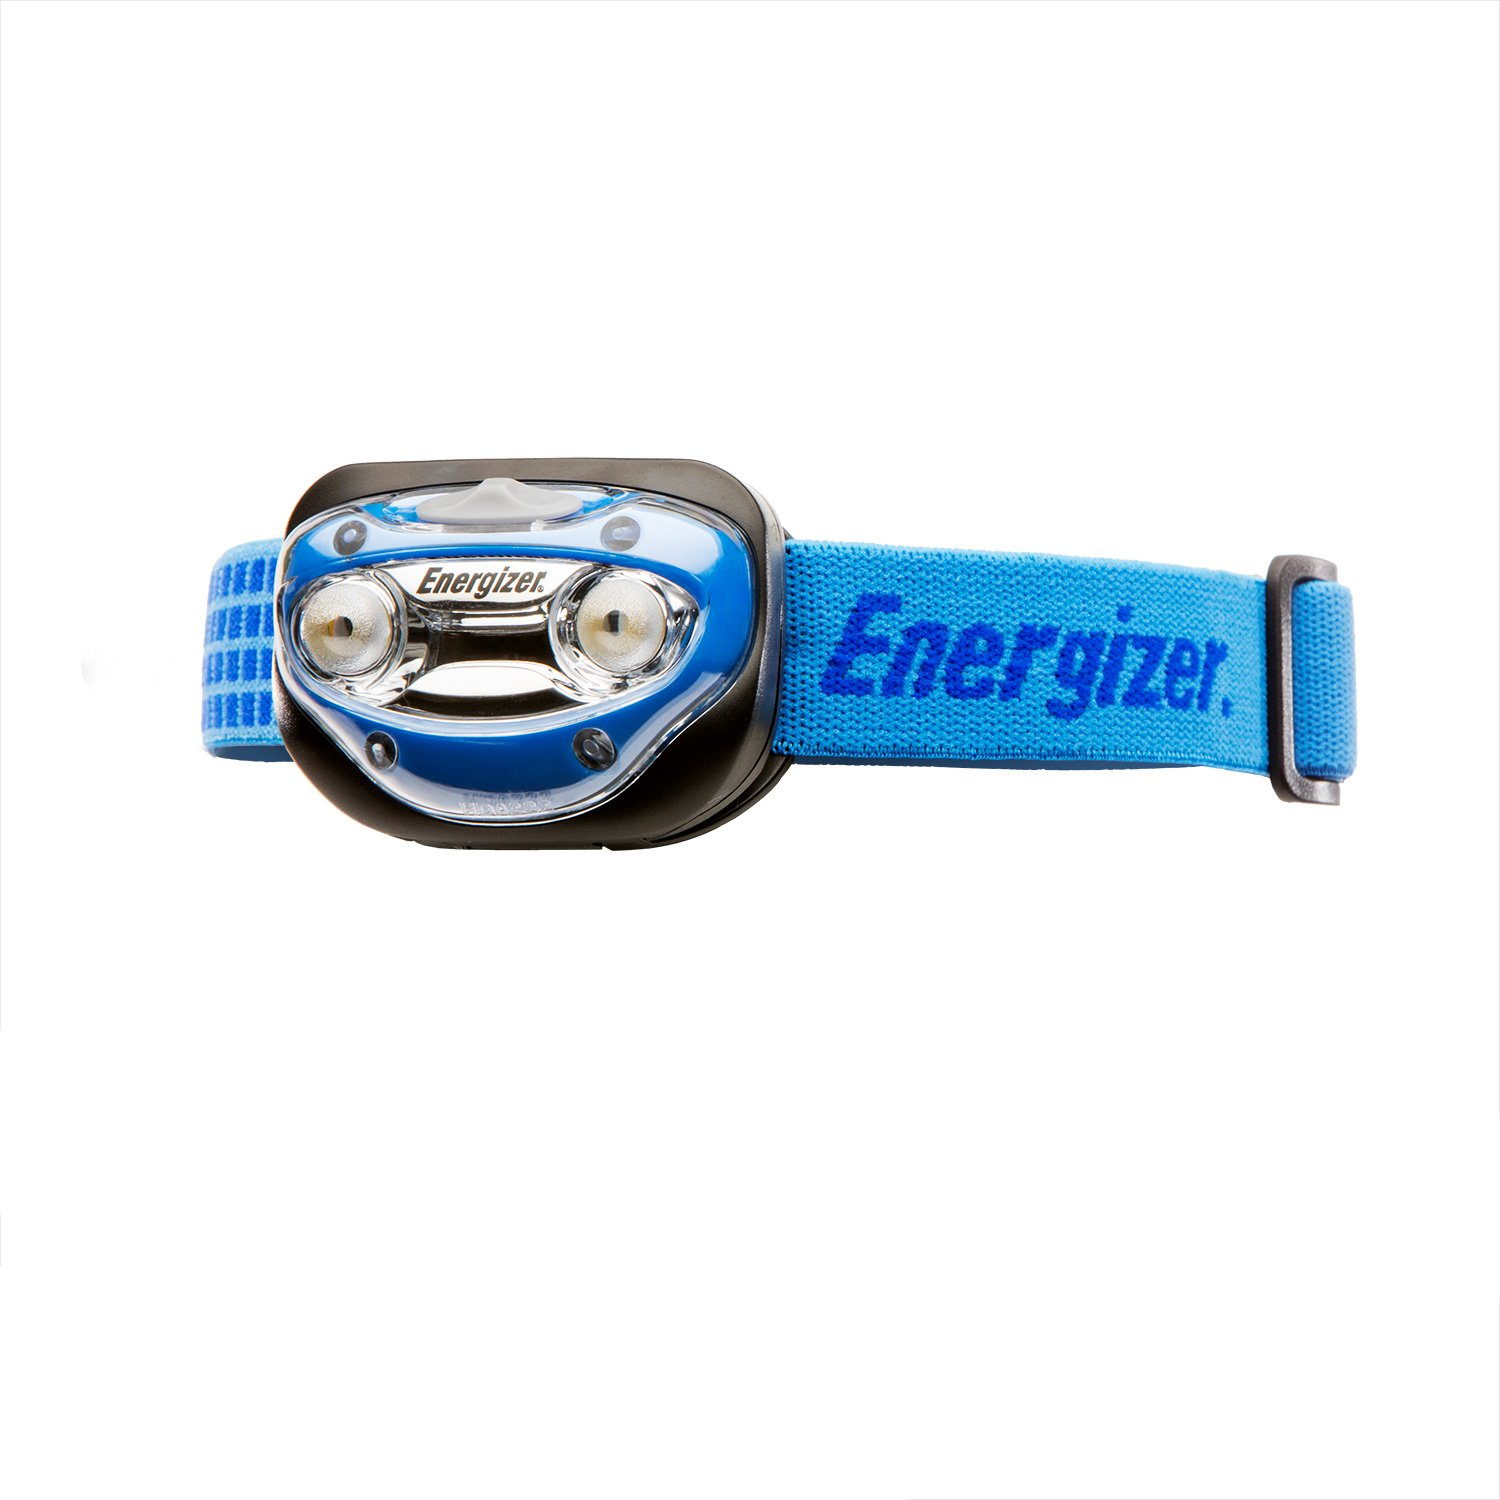 Energizer HDA32E LED Headlamp with Vision Optics and two modes (Batteries Included)